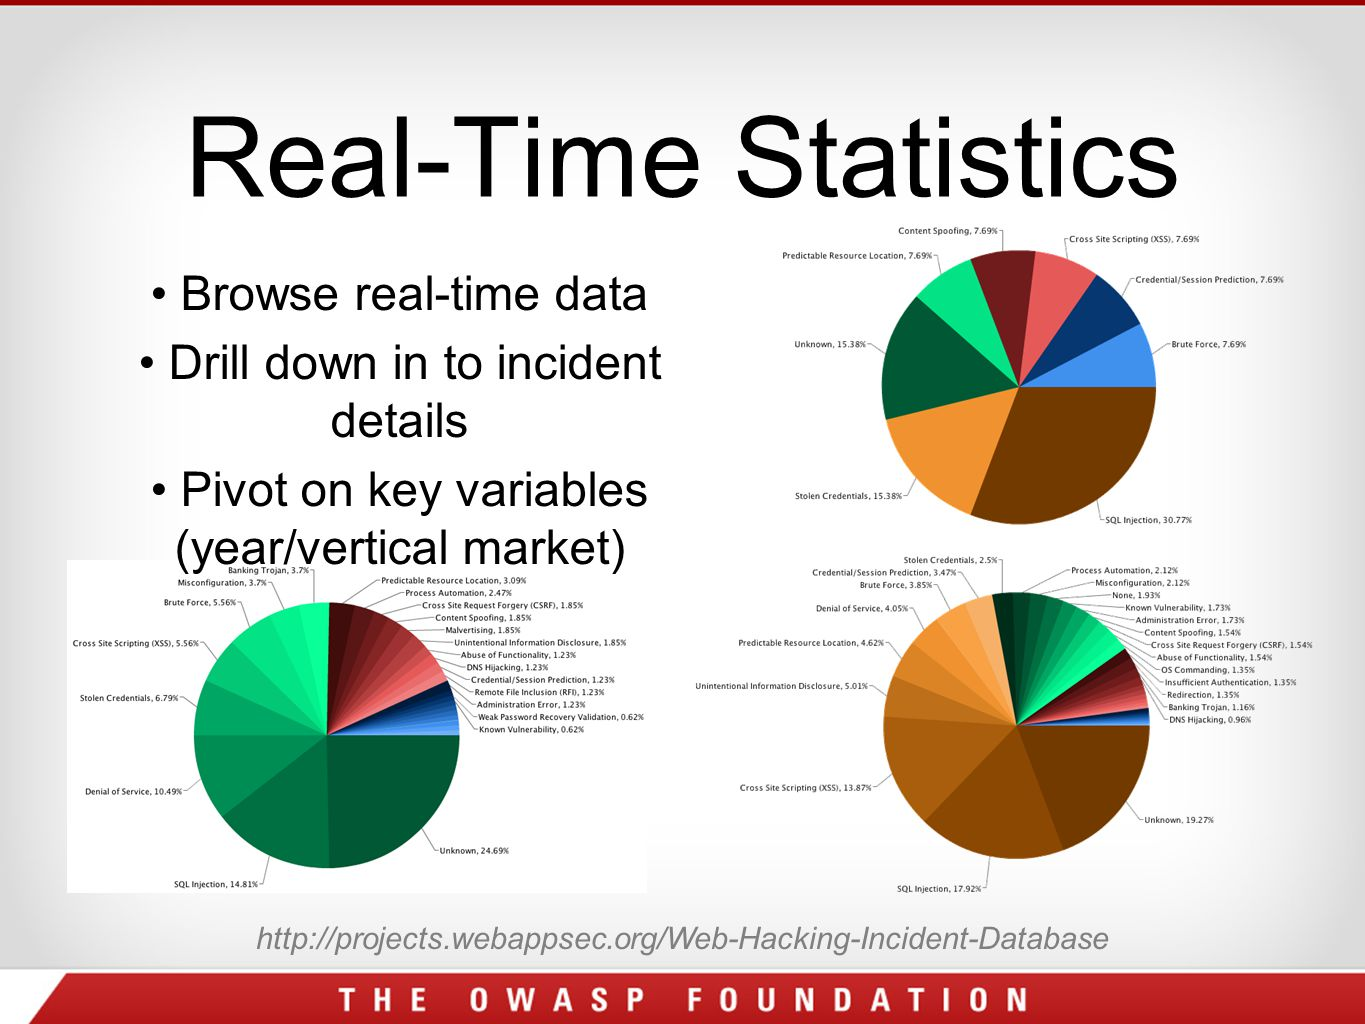 Real-Time Statistics http://projects.webappsec.org/Web-Hacking-Incident-Database Browse real-time data Drill down in to incident details Pivot on key variables (year/vertical market)